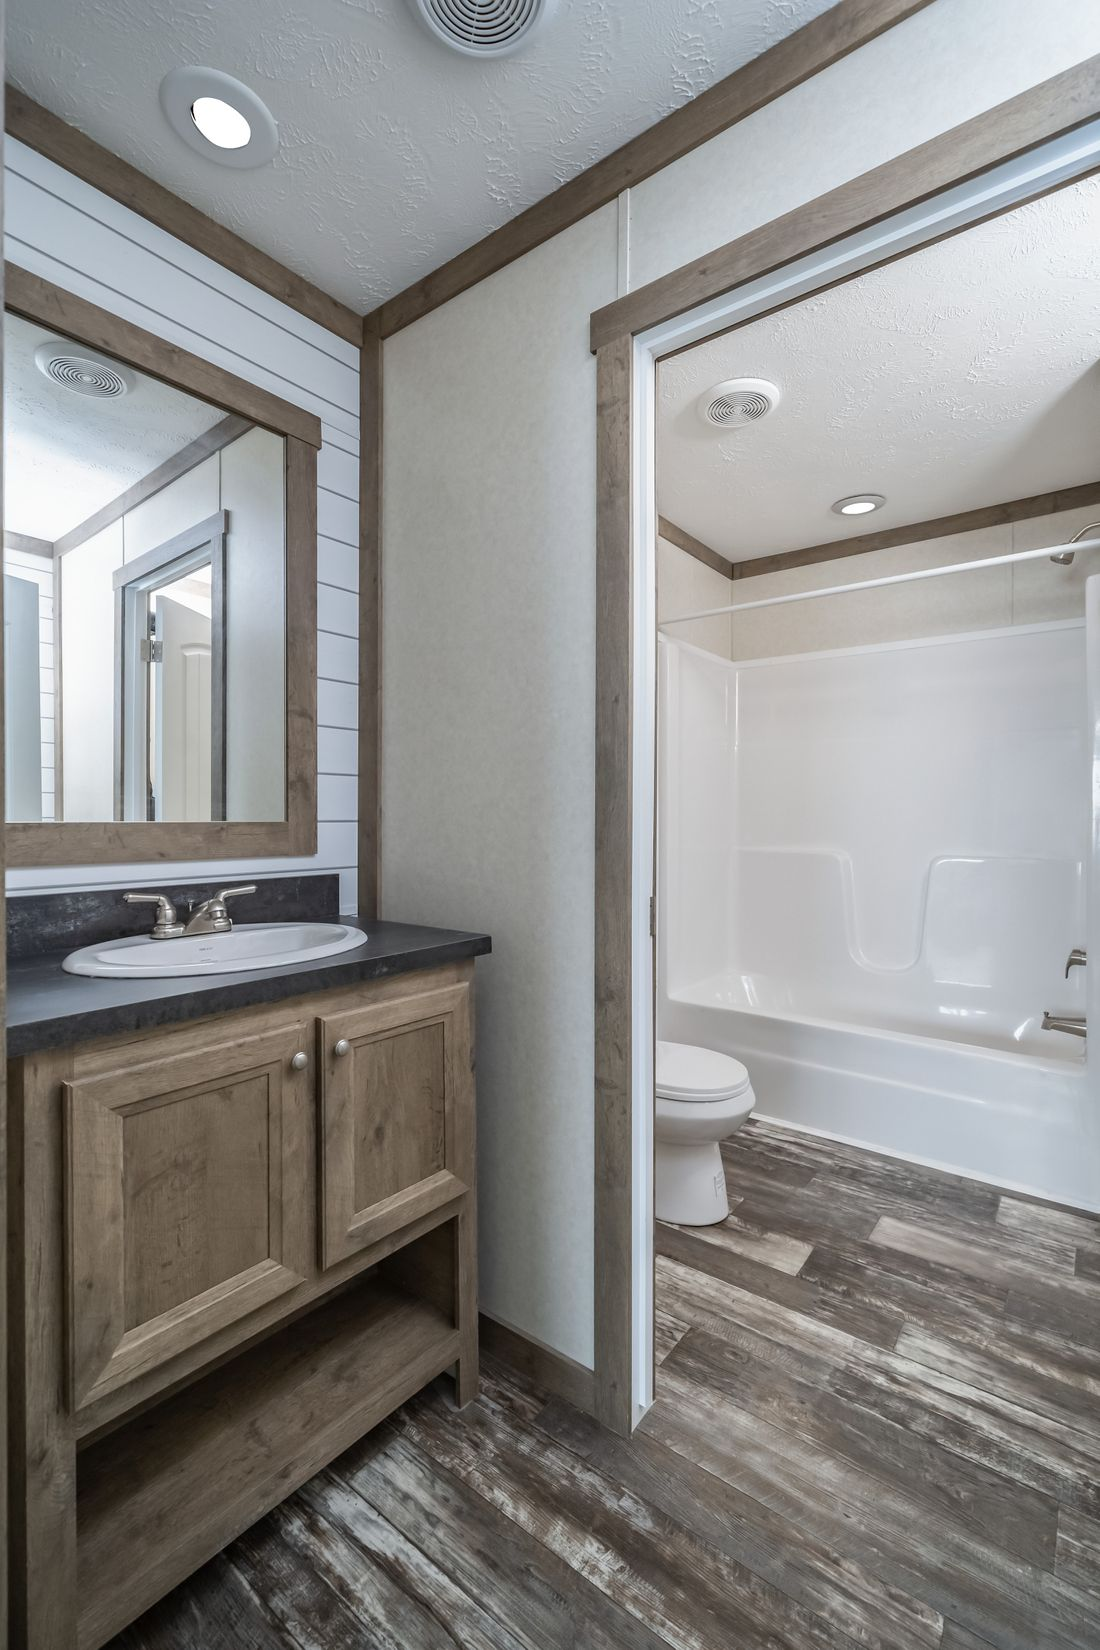 The THE COLUMBUS Guest Bathroom. This Manufactured Mobile Home features 4 bedrooms and 2 baths.